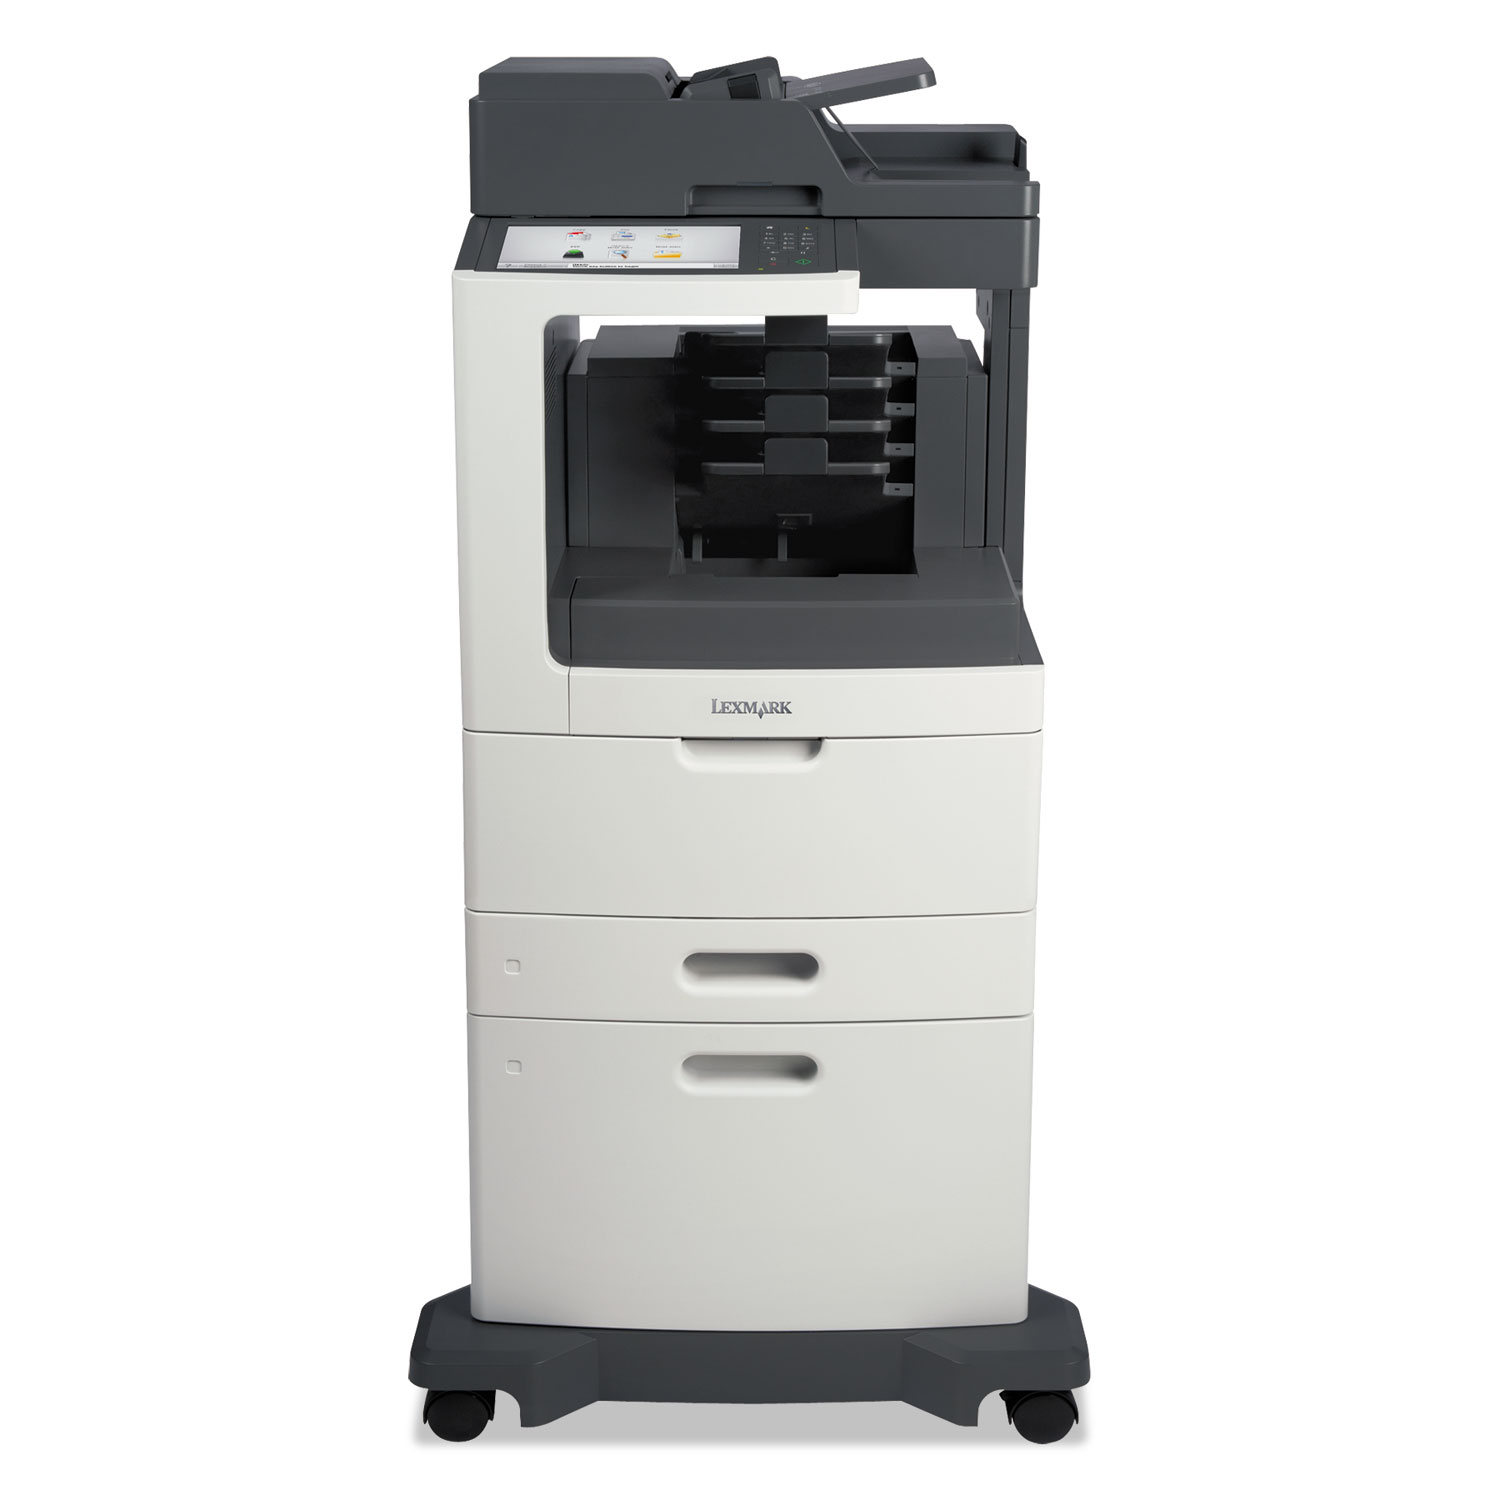 MX812dxme Multifunction Laser Printer, Copy/Fax/Print/Scan